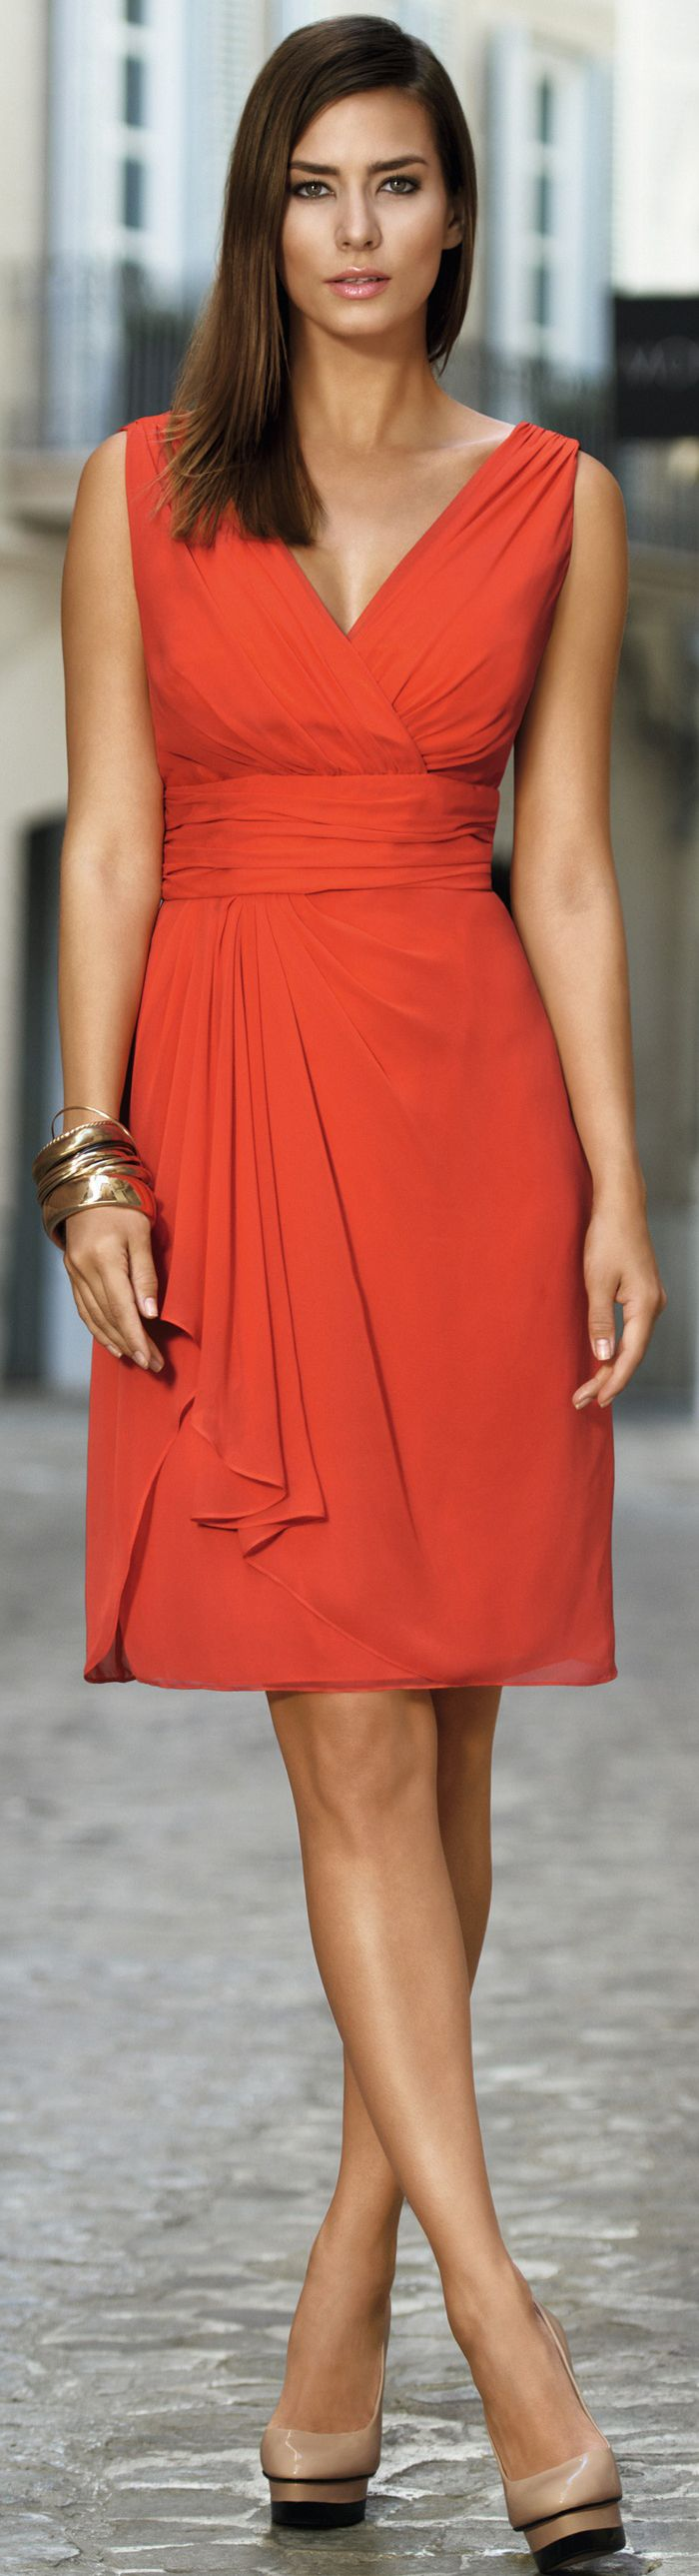 Sexy Dresses For Cruises Red Rouge Rojo Rot Rosso Dearg